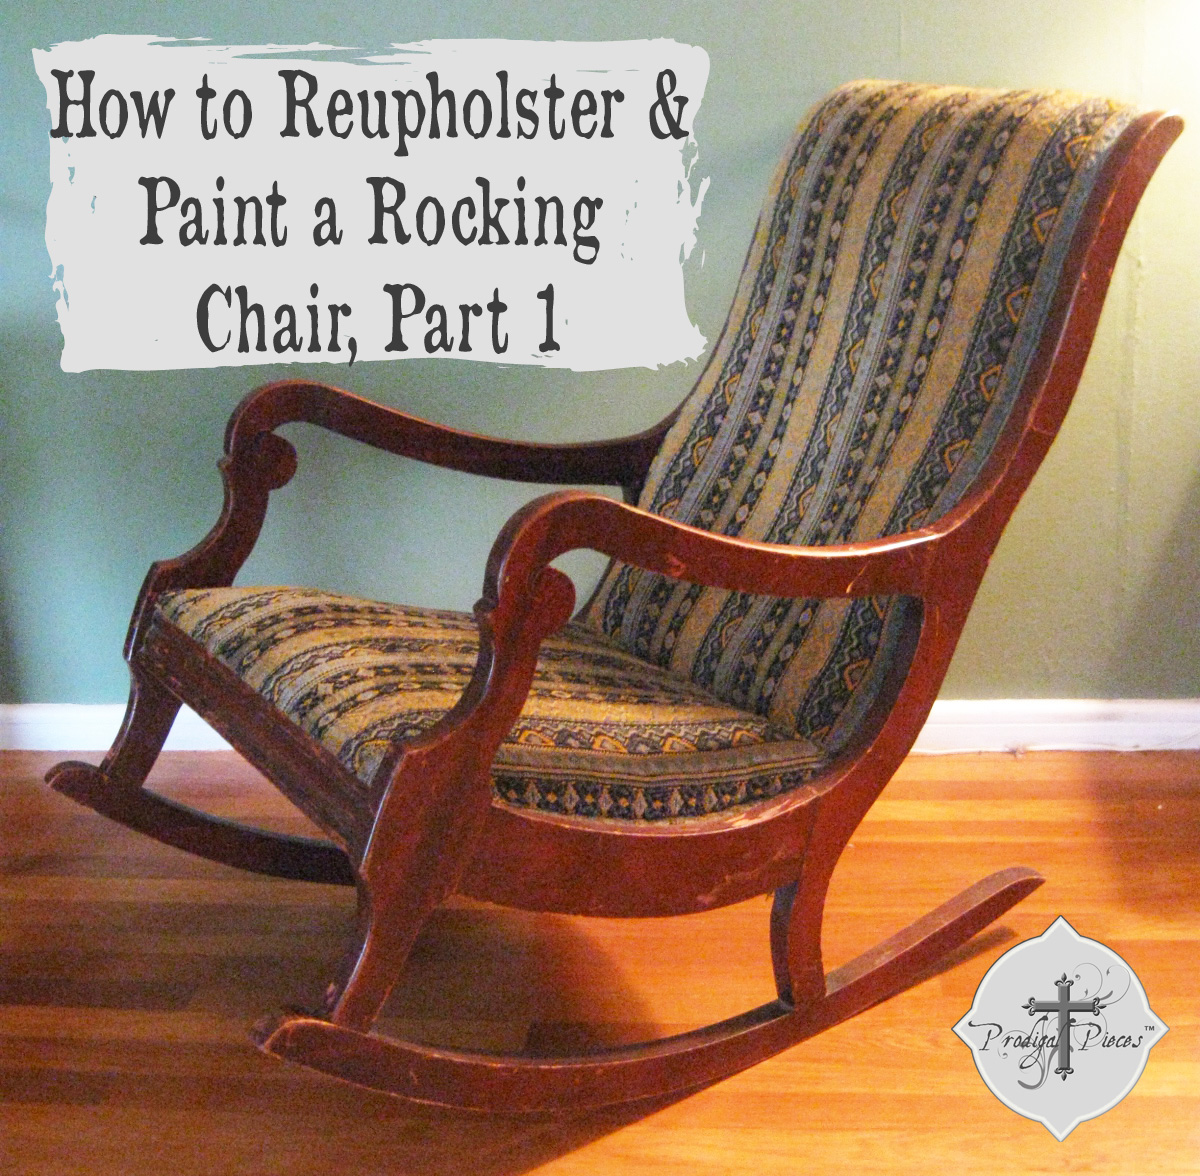 How To Reupholster Paint A Rocking Chair Part 1 Prodigal Pieces